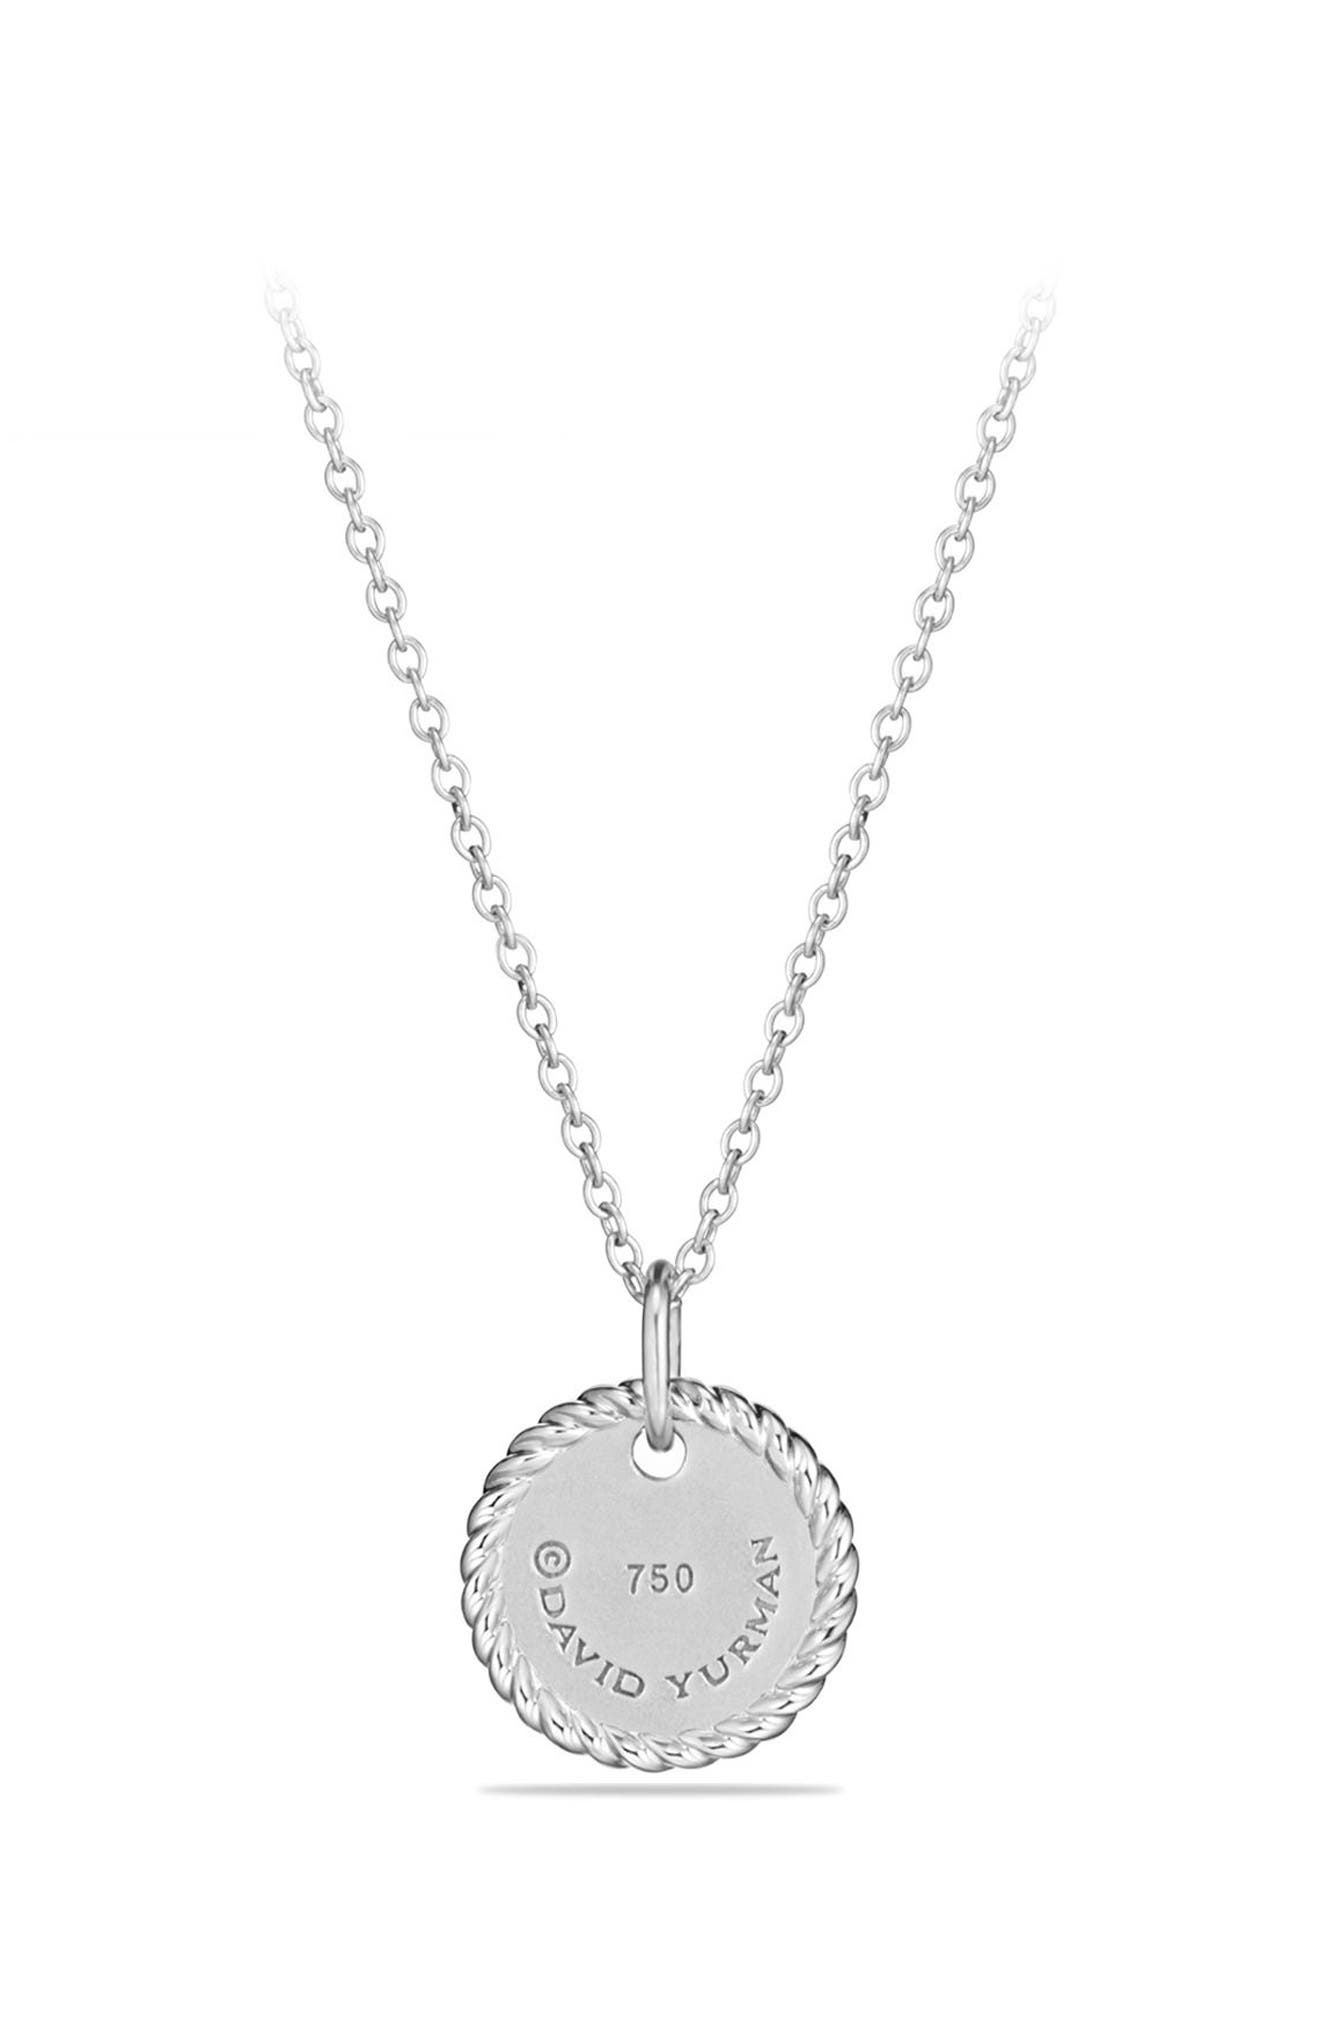 Initial Charm Necklace with Diamonds in 18K White Gold,                             Alternate thumbnail 2, color,                             B